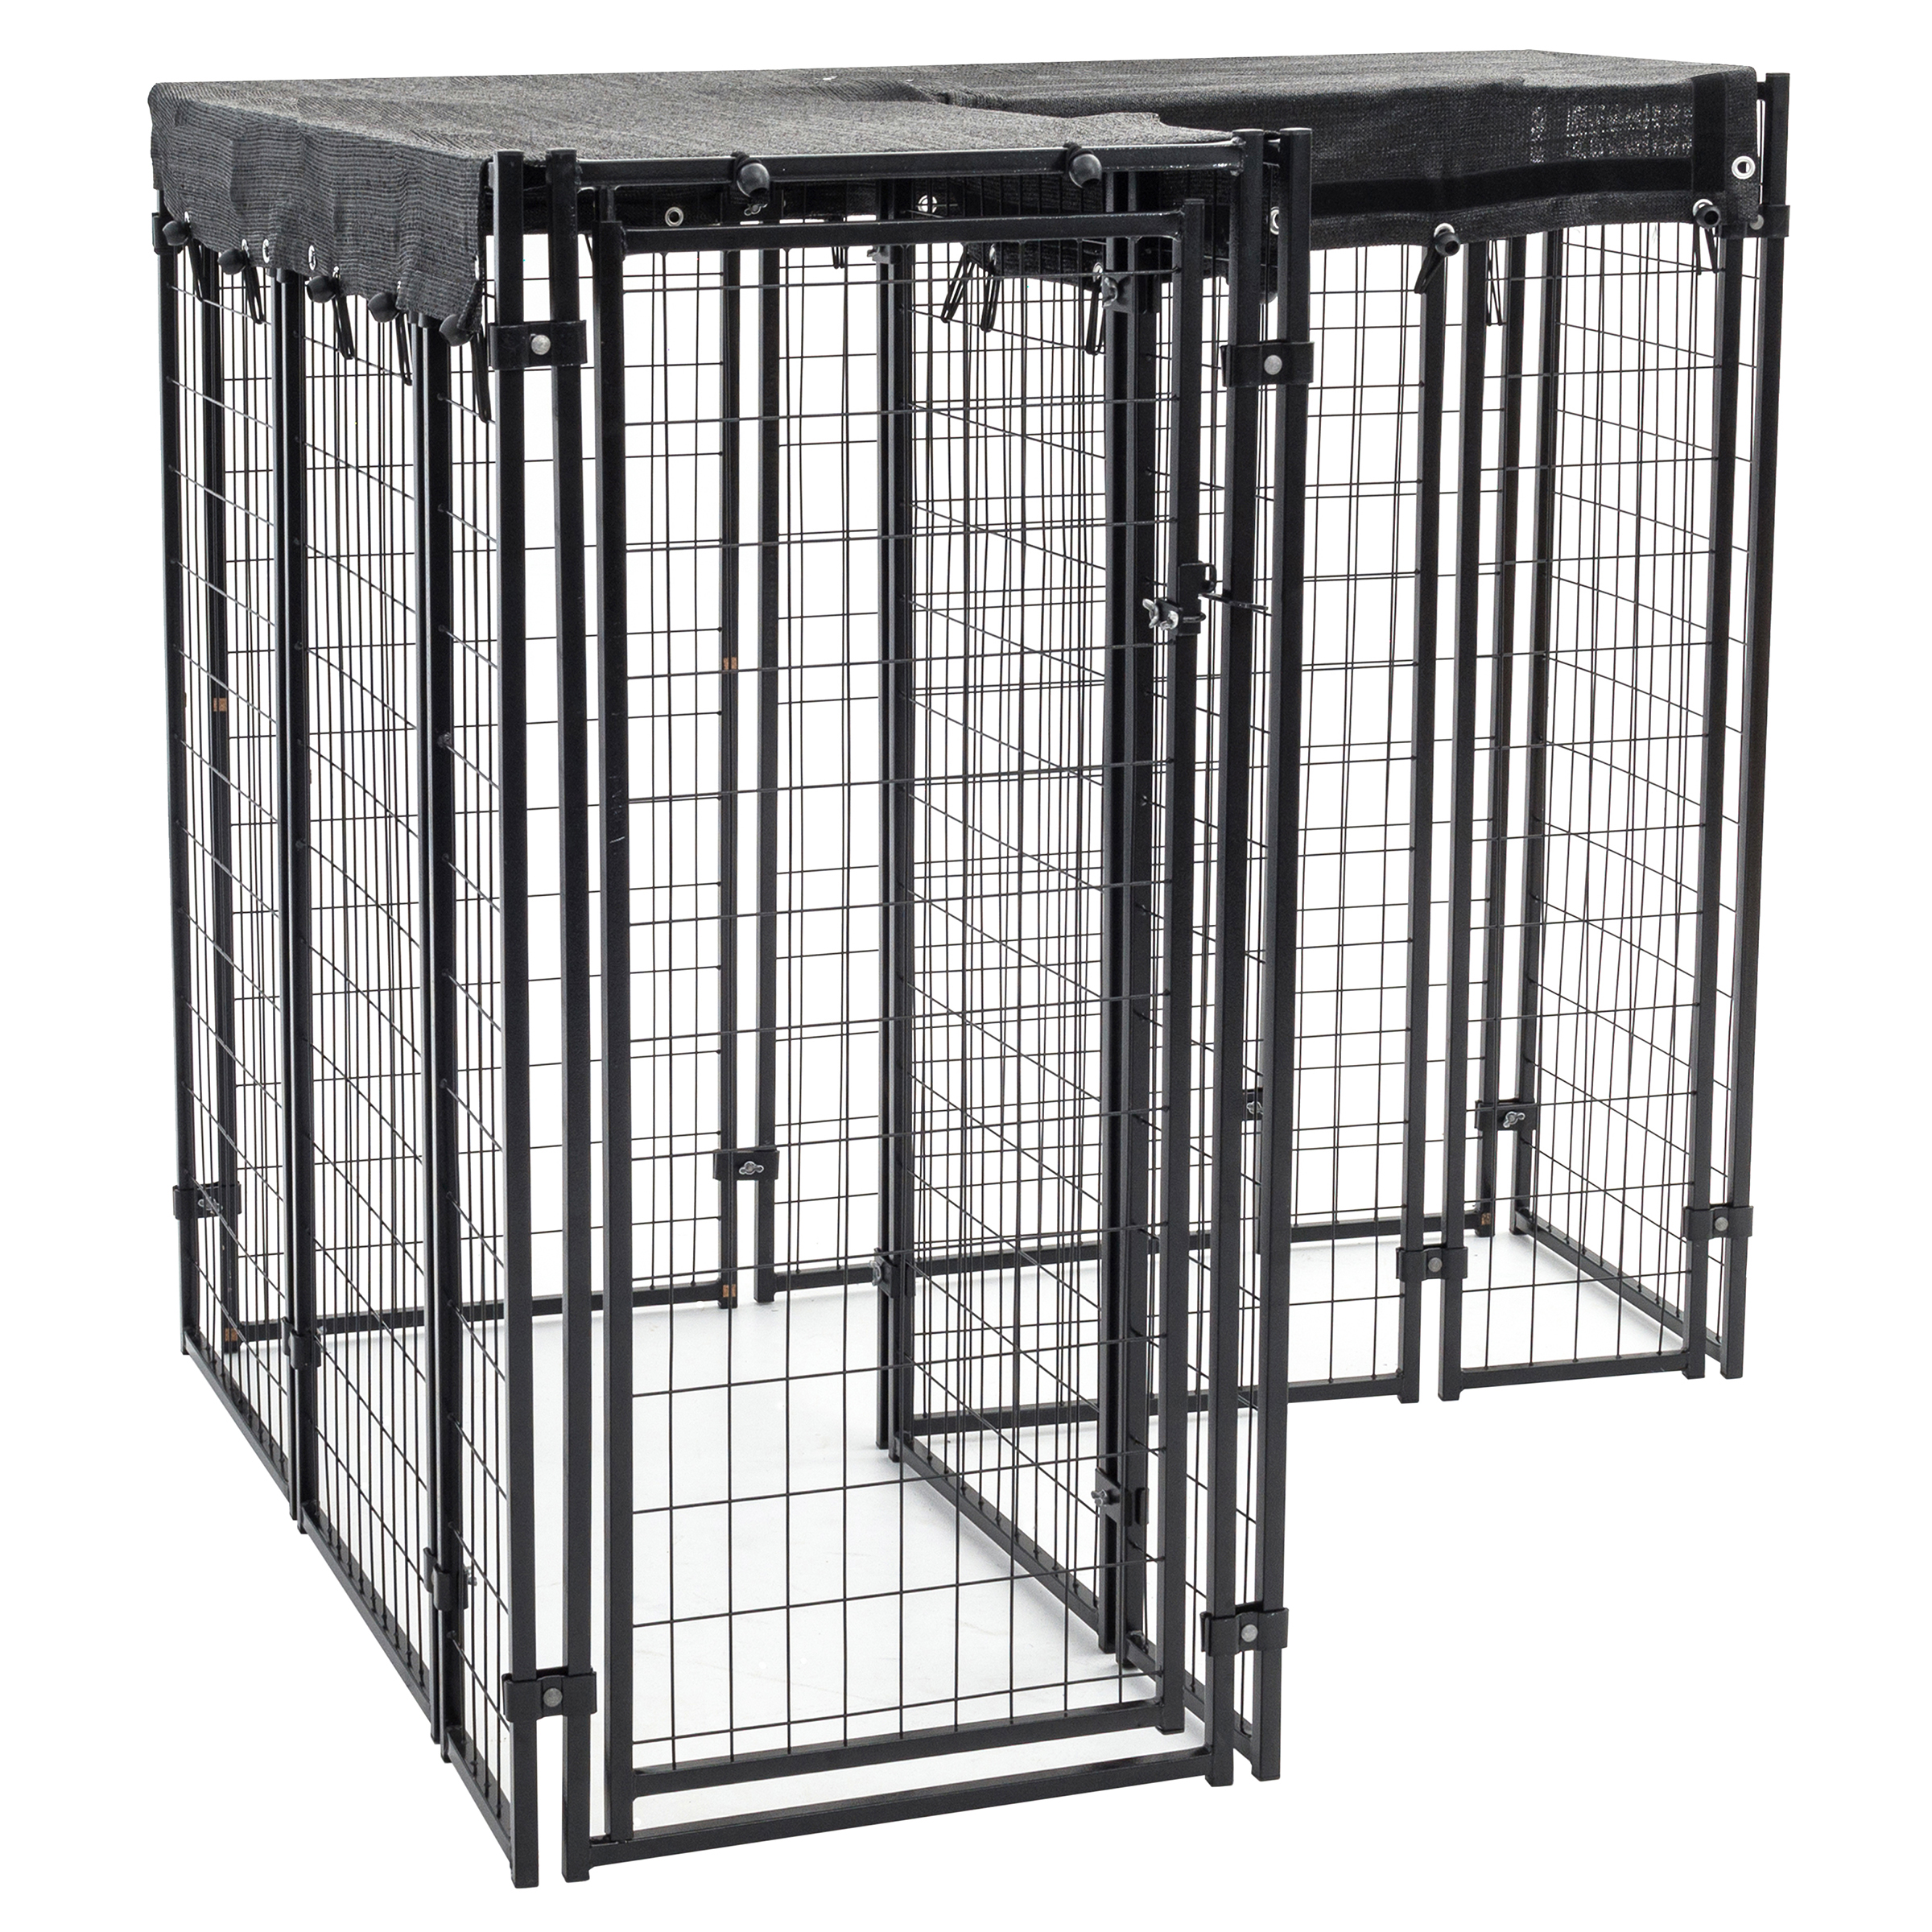 AKC® Hi-Rise™ 5ft x 5ft x 5ft Heavy-duty Dog Kennel with Cover for Small or Odd-shape Balconies & Patios with Free Training Guide